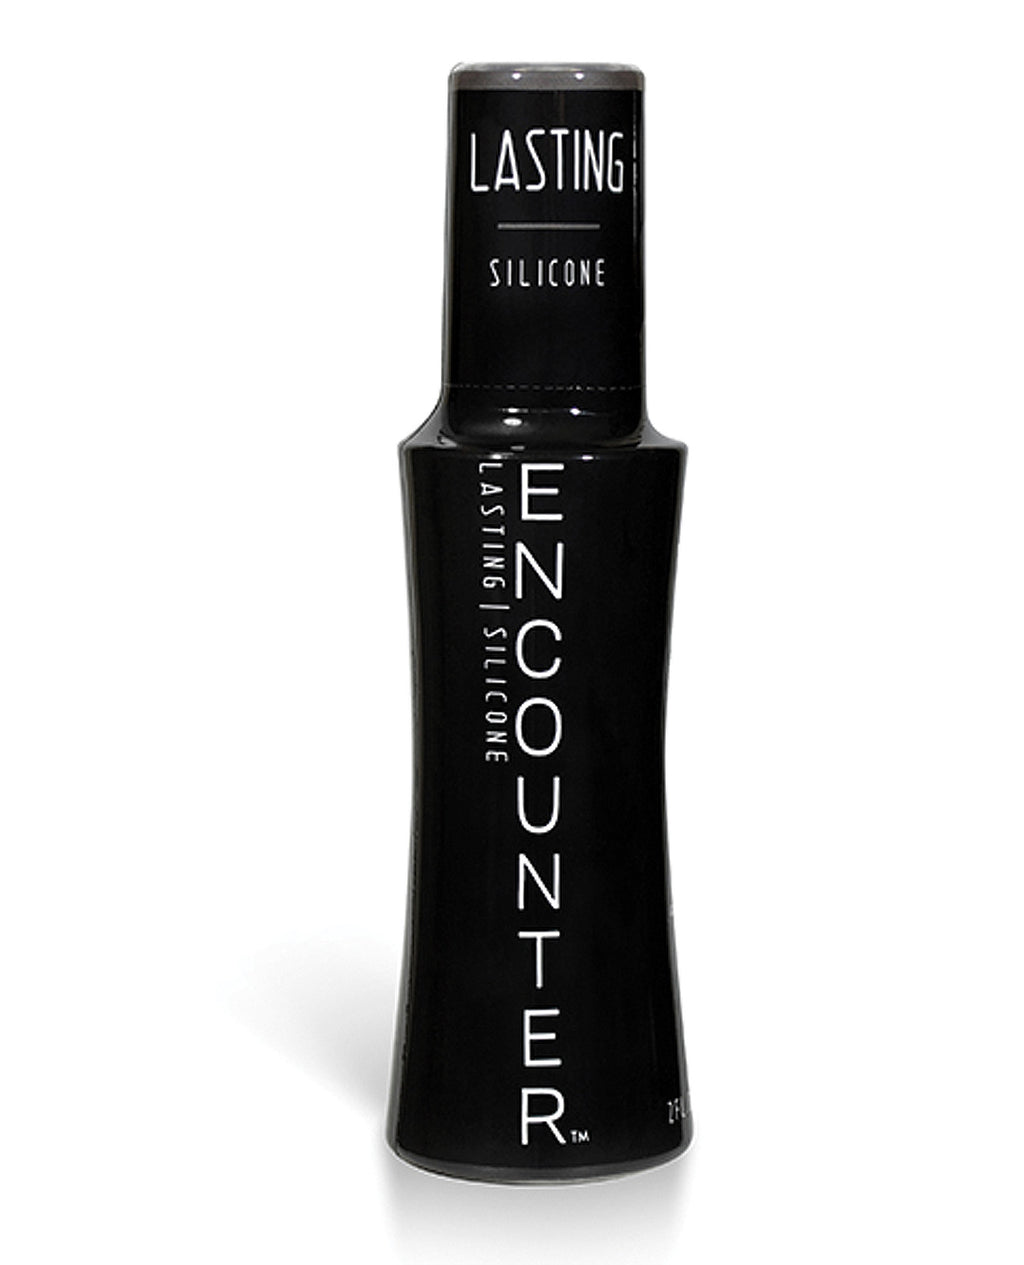 Encounter Female Silicone Lubricant - Lasting